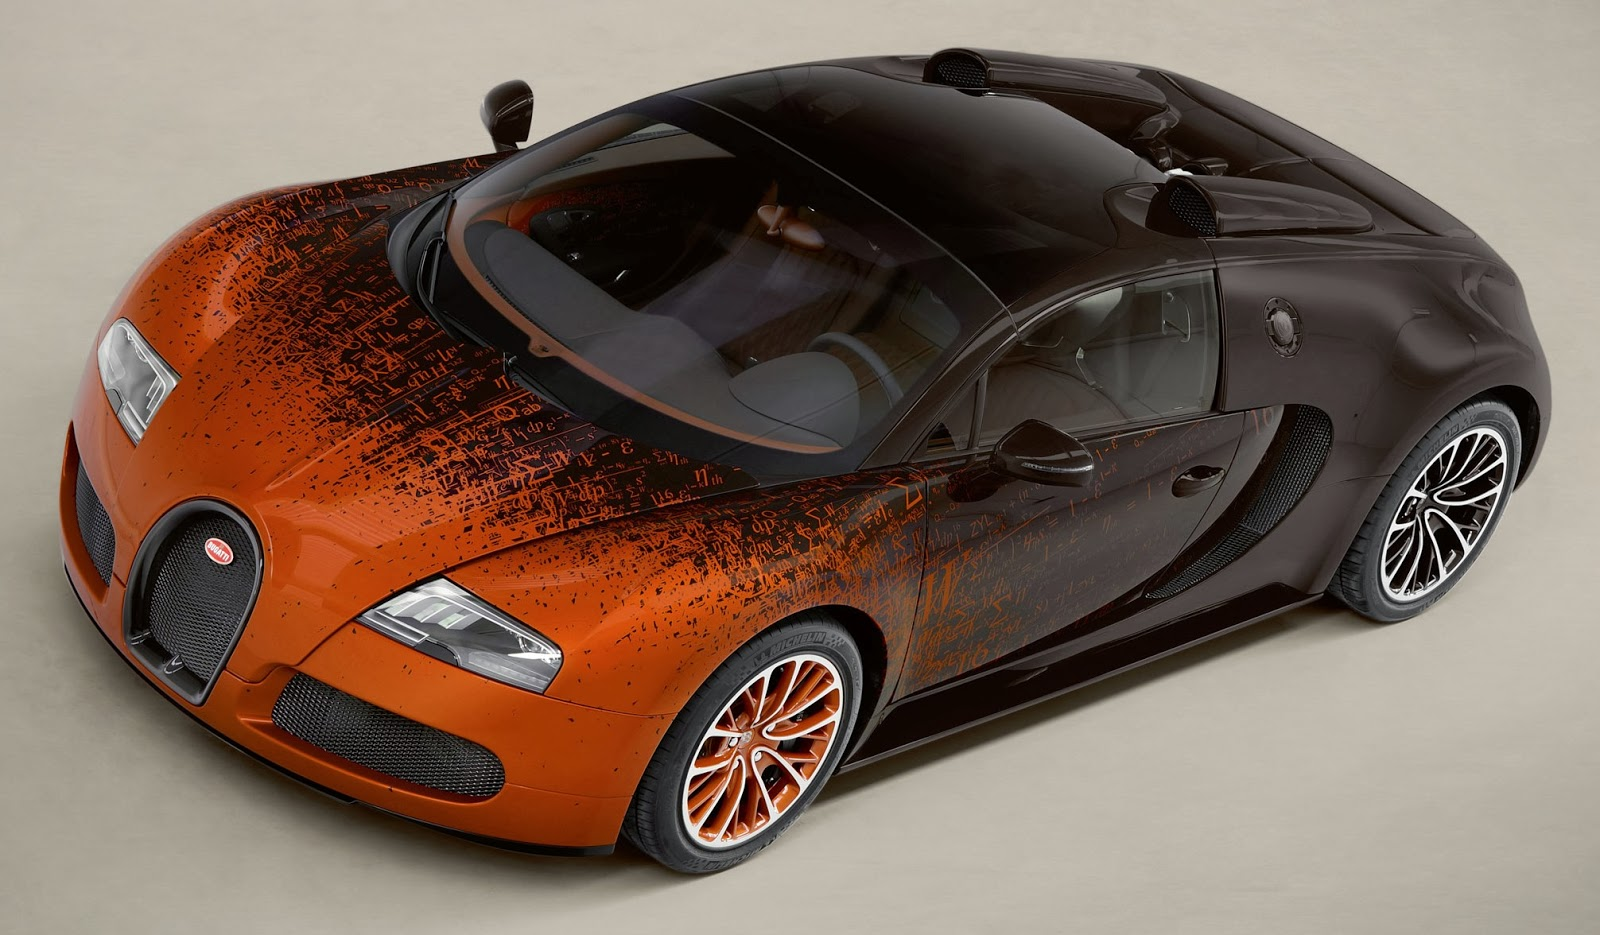 passionate riding bugatti veyron venet. Black Bedroom Furniture Sets. Home Design Ideas